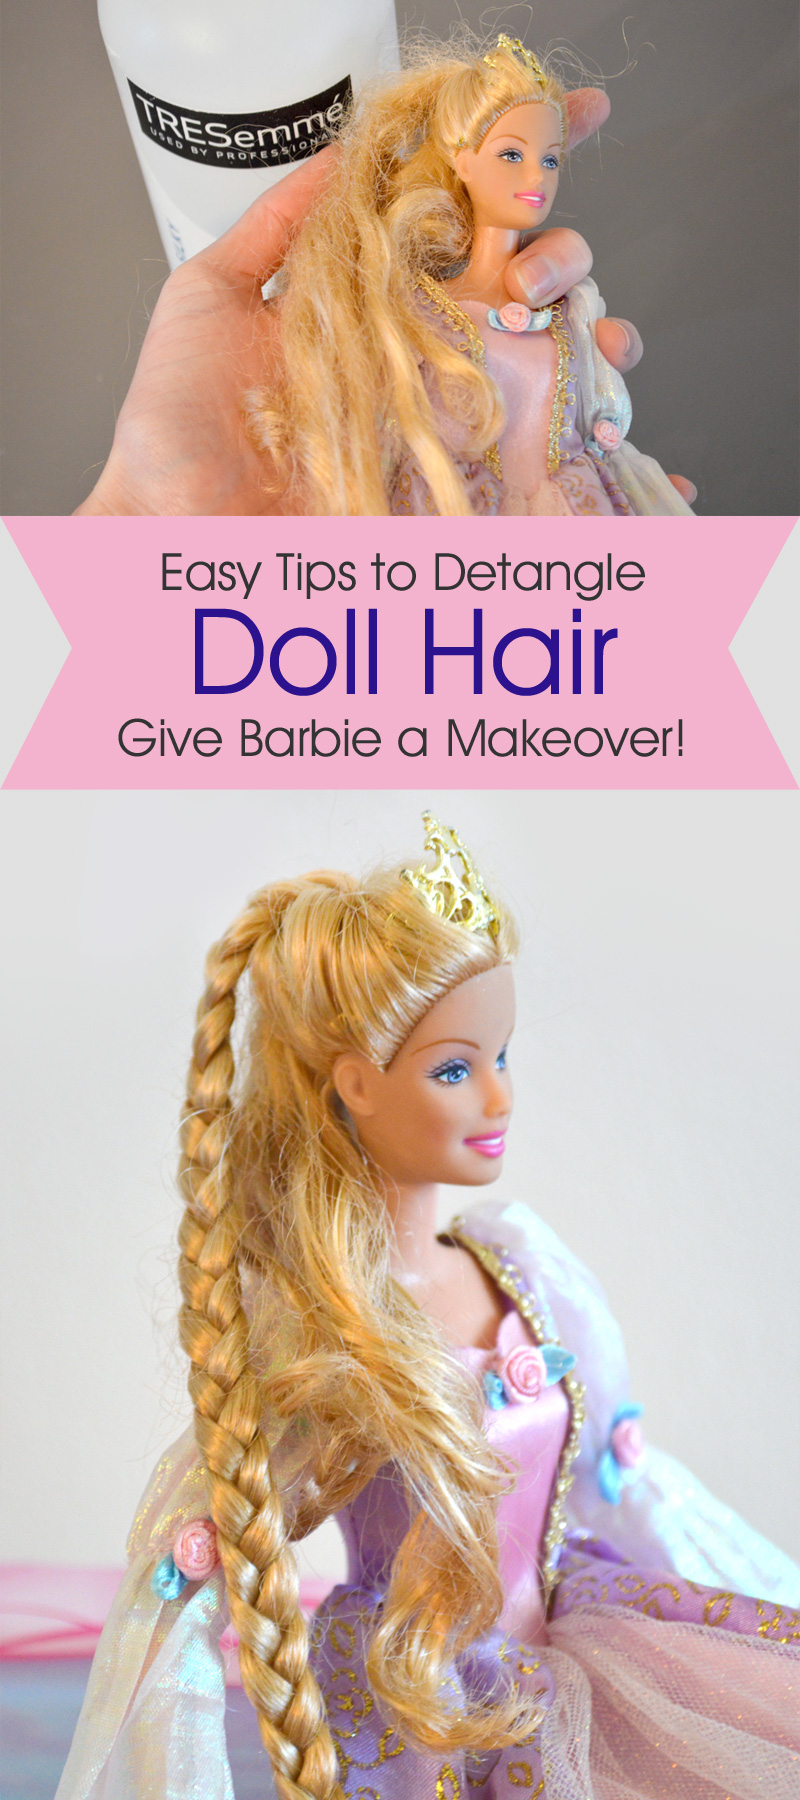 Easy tips to detangle artificial doll hair - Give Barbie a makeover